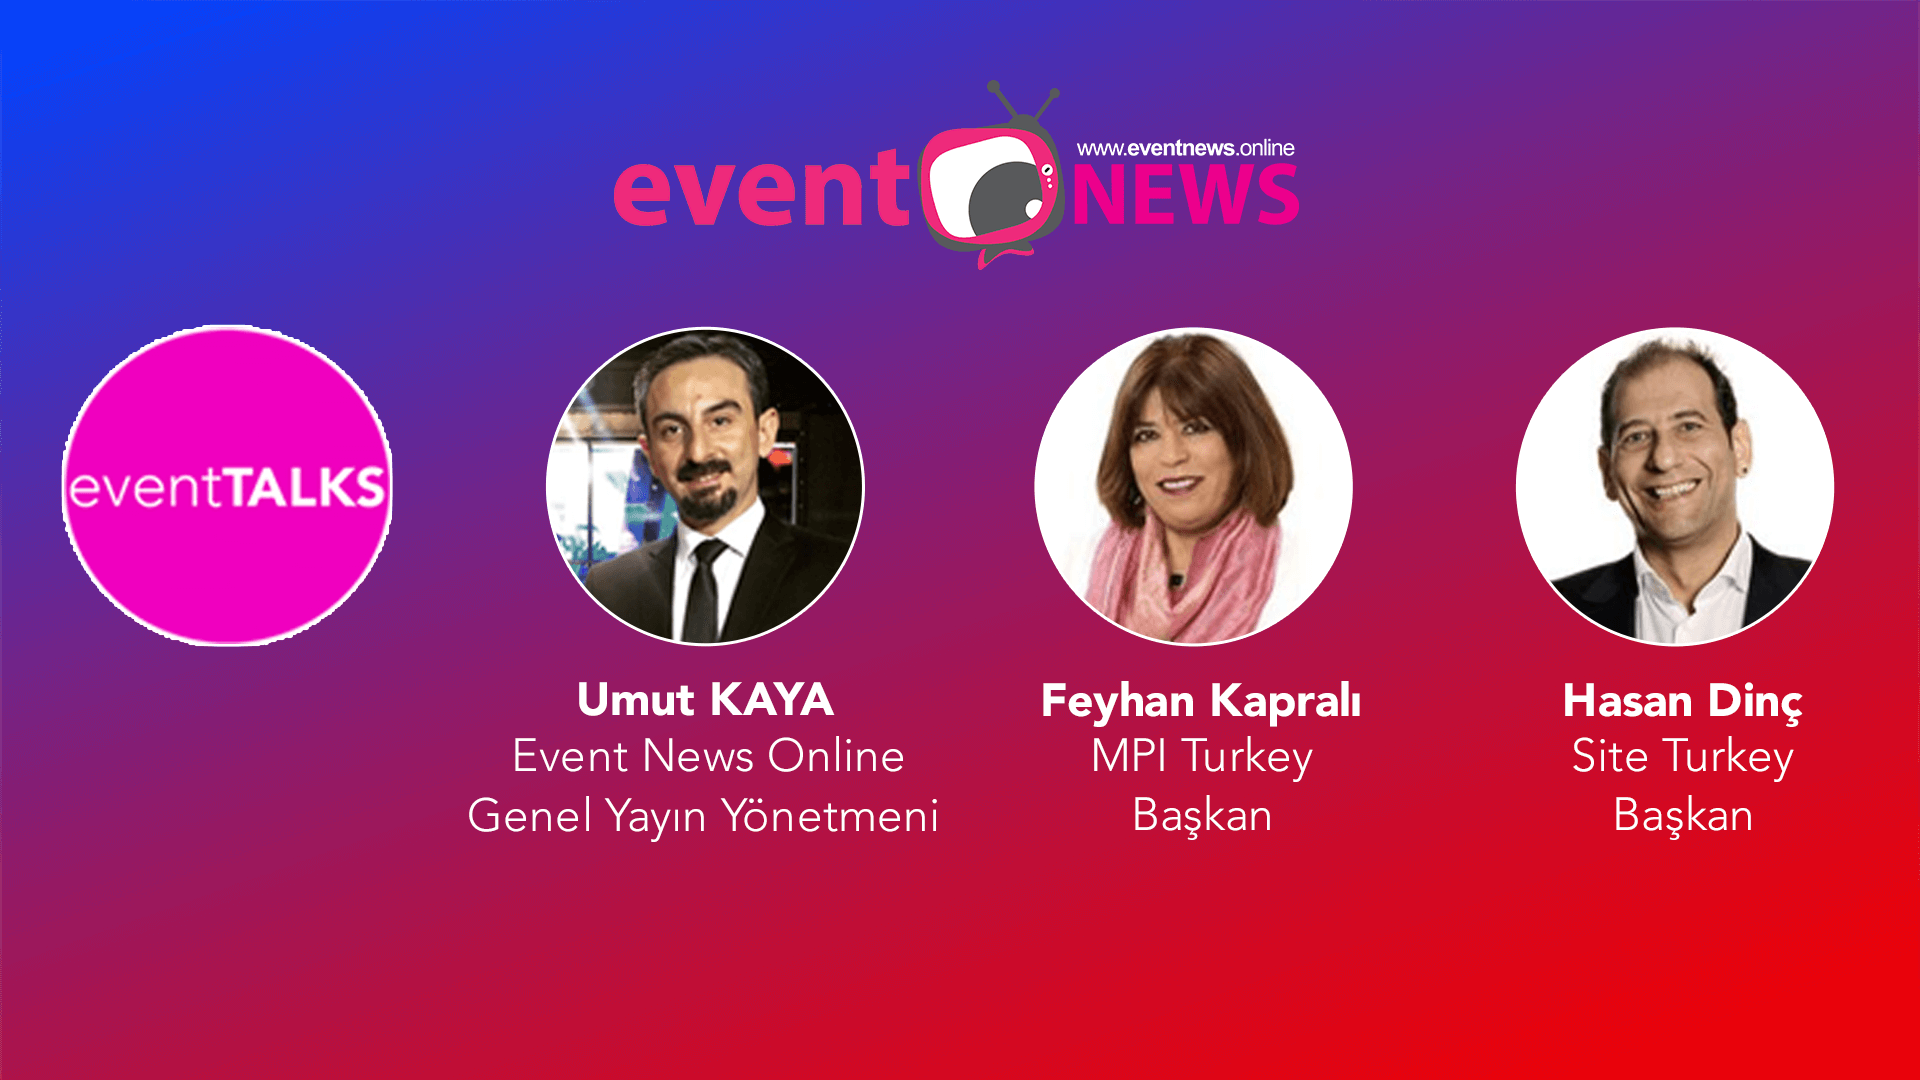 Site Turkey ve MPI Turkey, Event News'in Konuğu Oldu